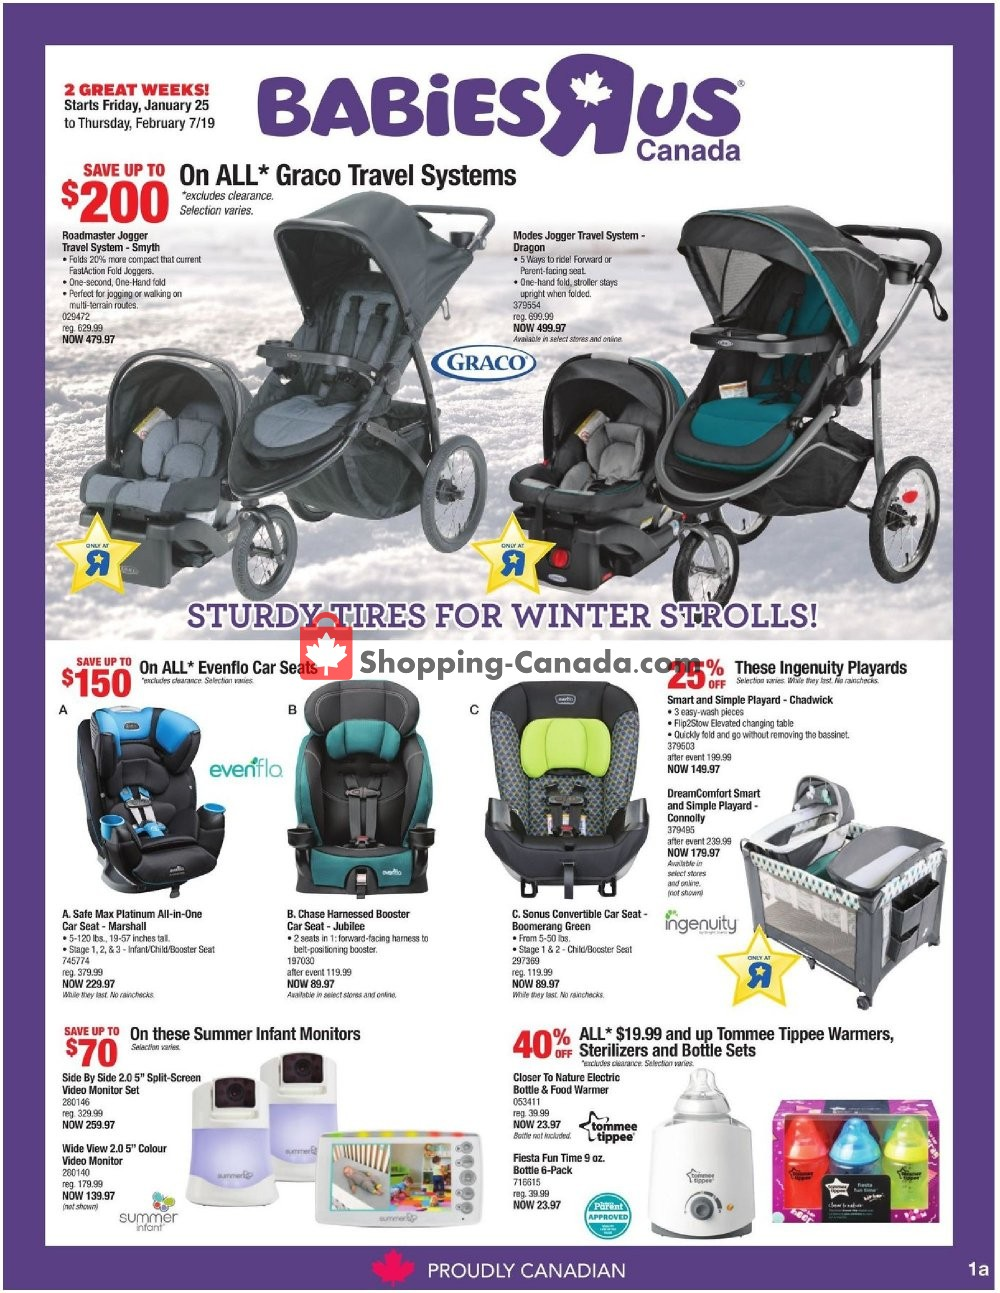 Babies R Us Carseats : babies, carseats, Babies, Convertible, Cheaper, Retail, Price>, Clothing,, Accessories, Lifestyle, Products, Women